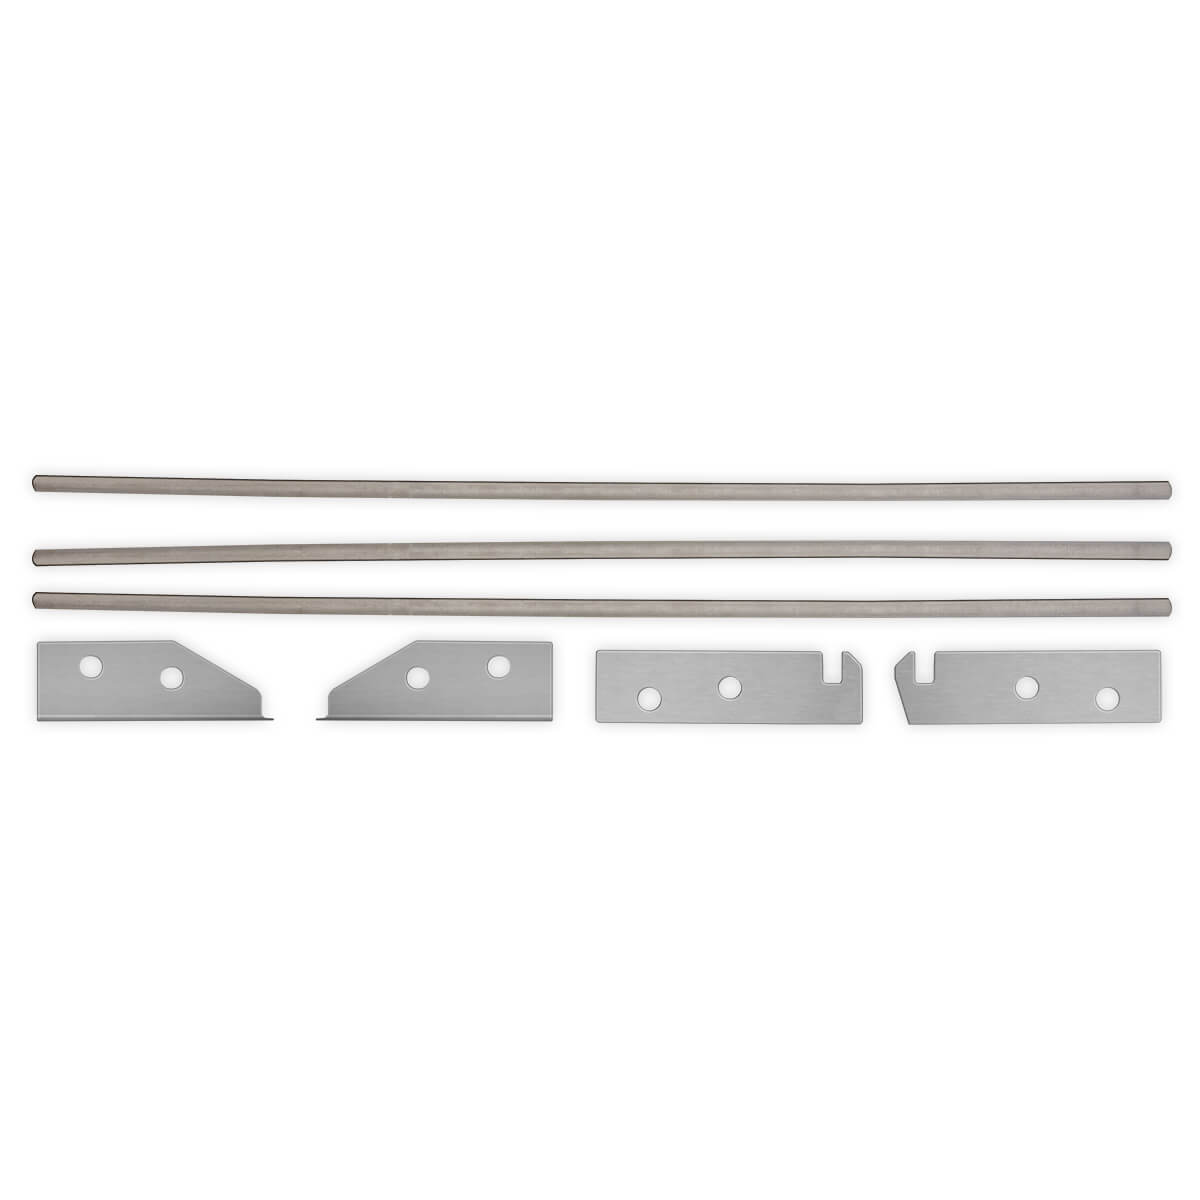 "LEVEL5 Flat Box Repair Kit for 7"" Flat Box 